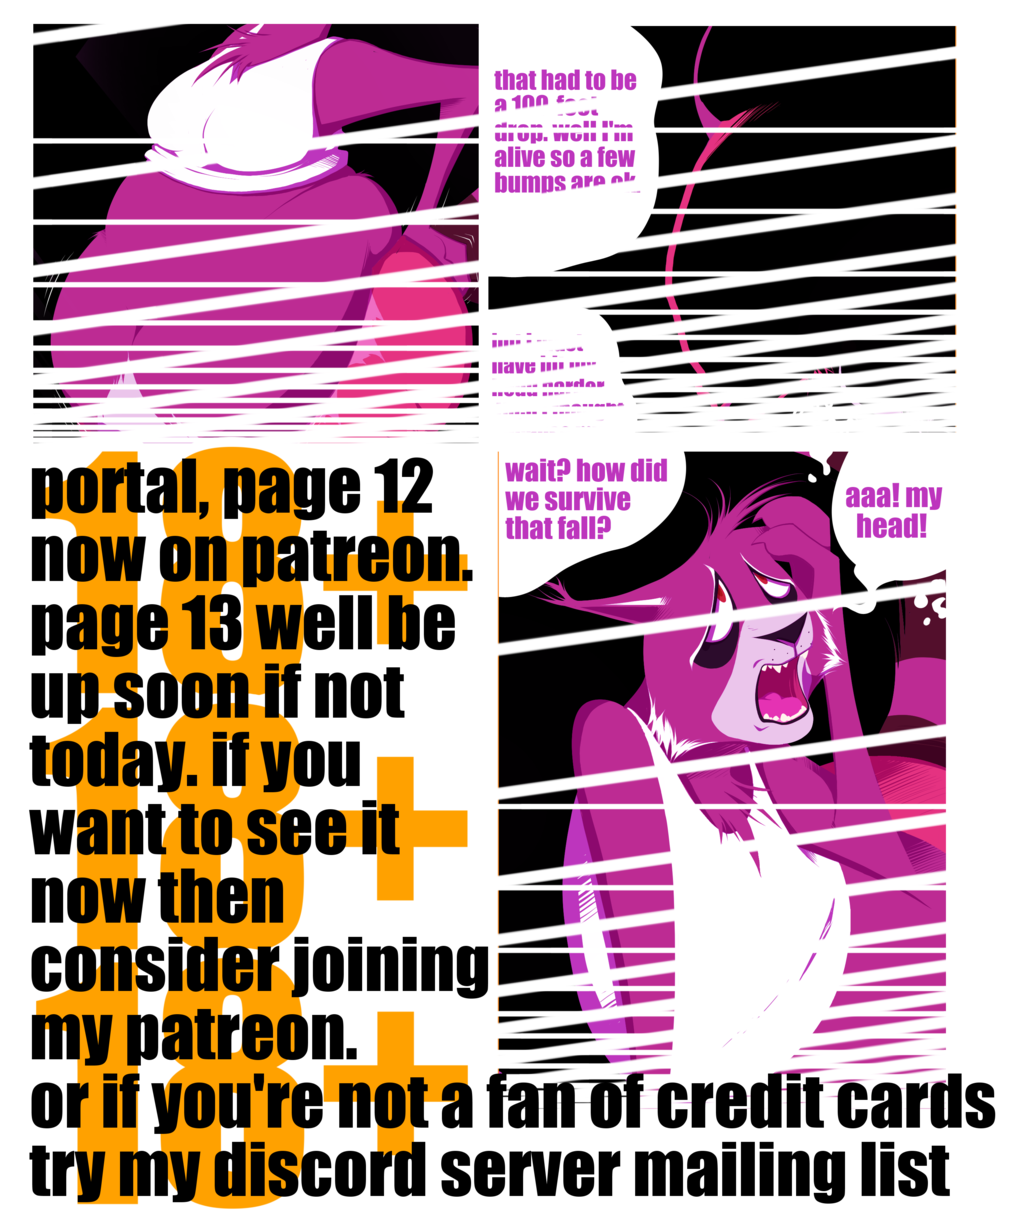 Most recent image: potral page 12 now up on patreon and discord server